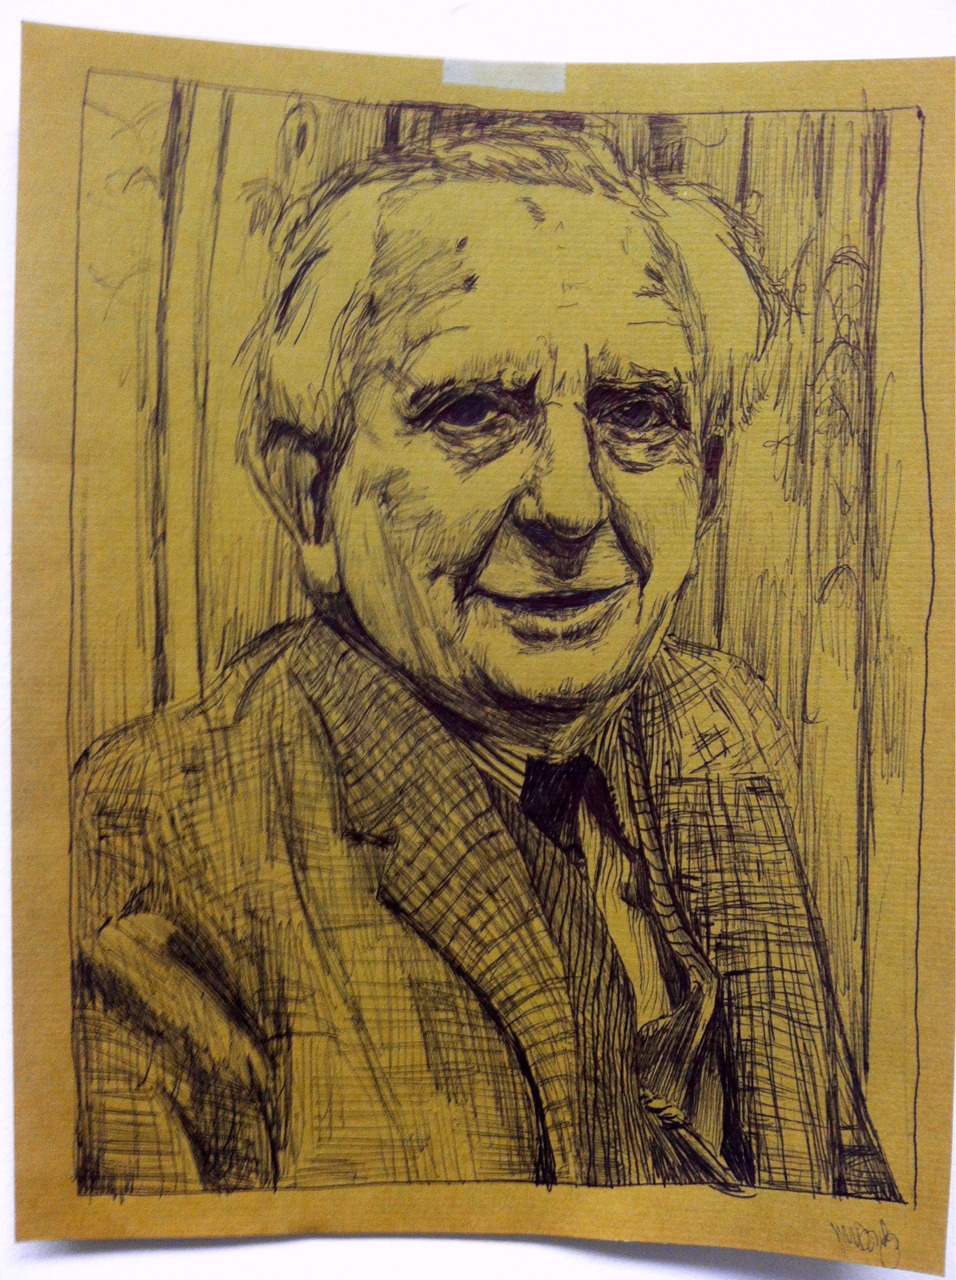 Sketch of Hobbit author J.R.R. Tolkien.